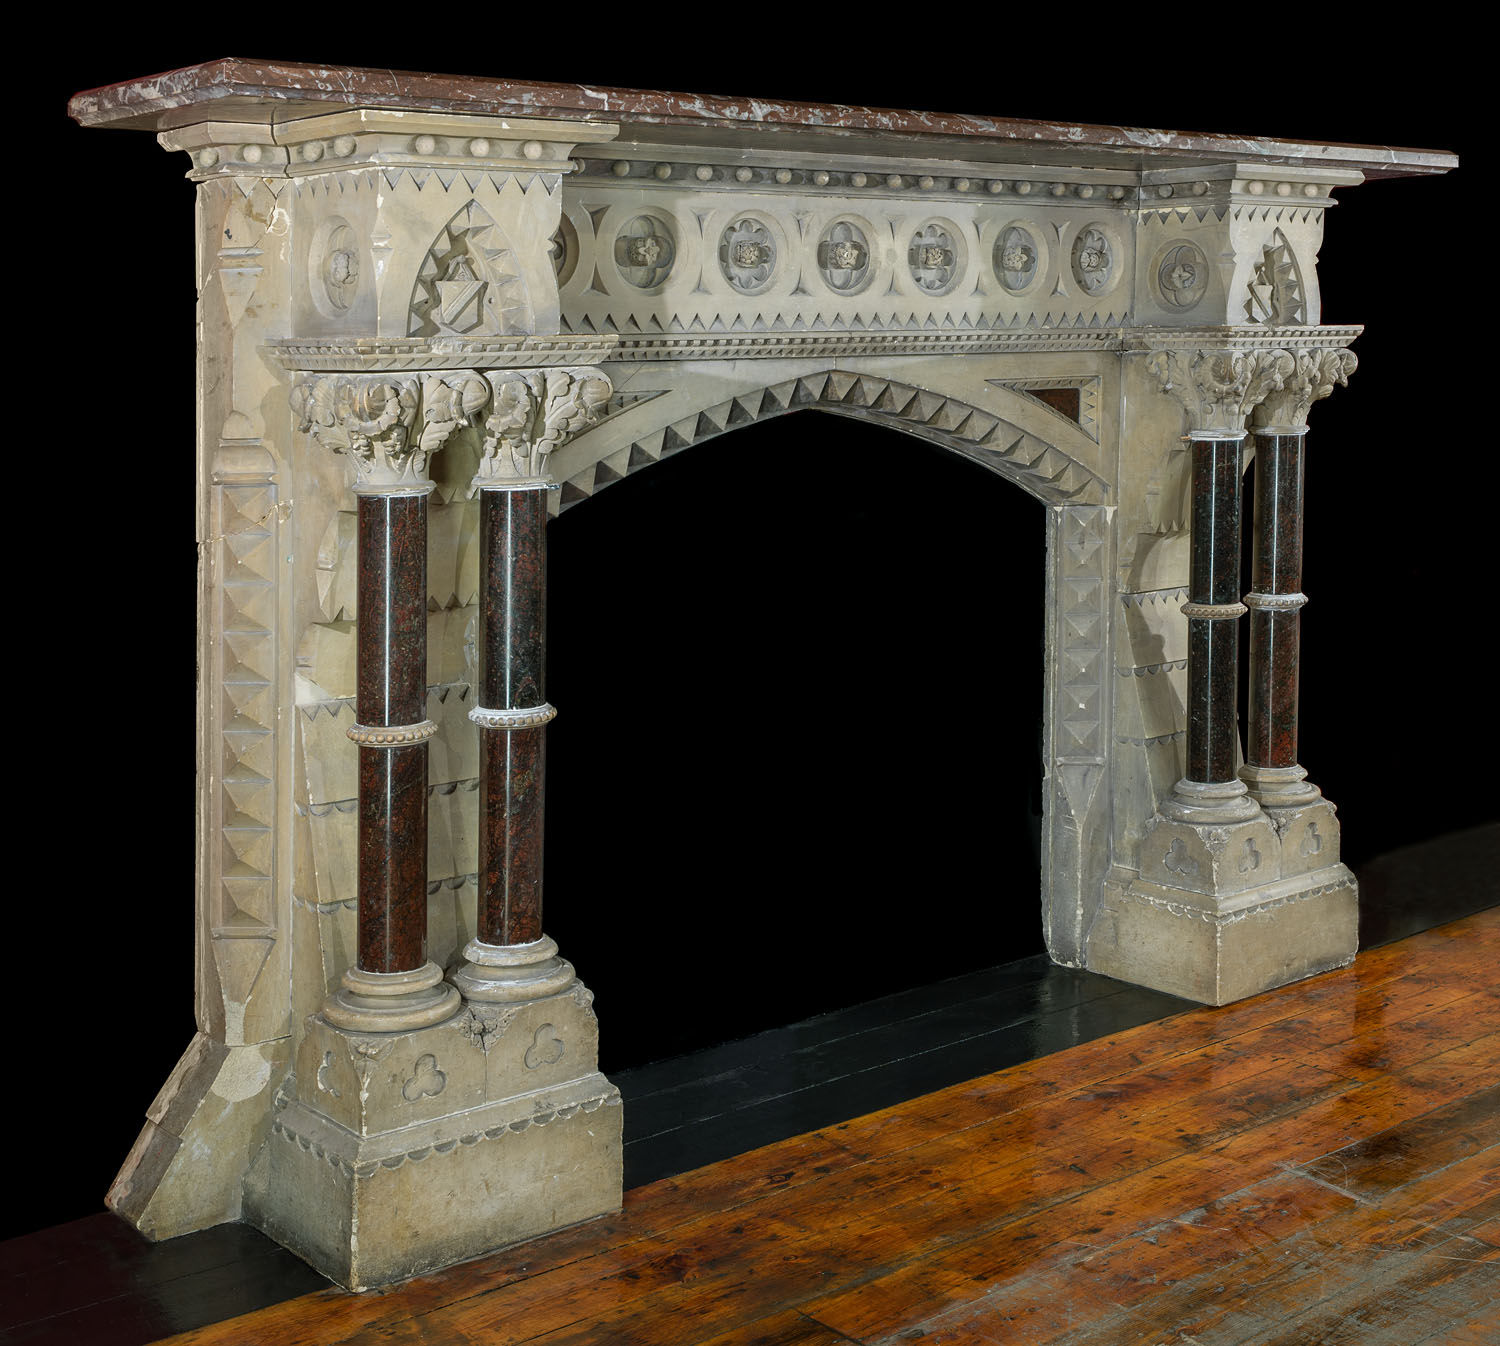 A Victorian Gothic Revival Caen Stone fireplace mantel